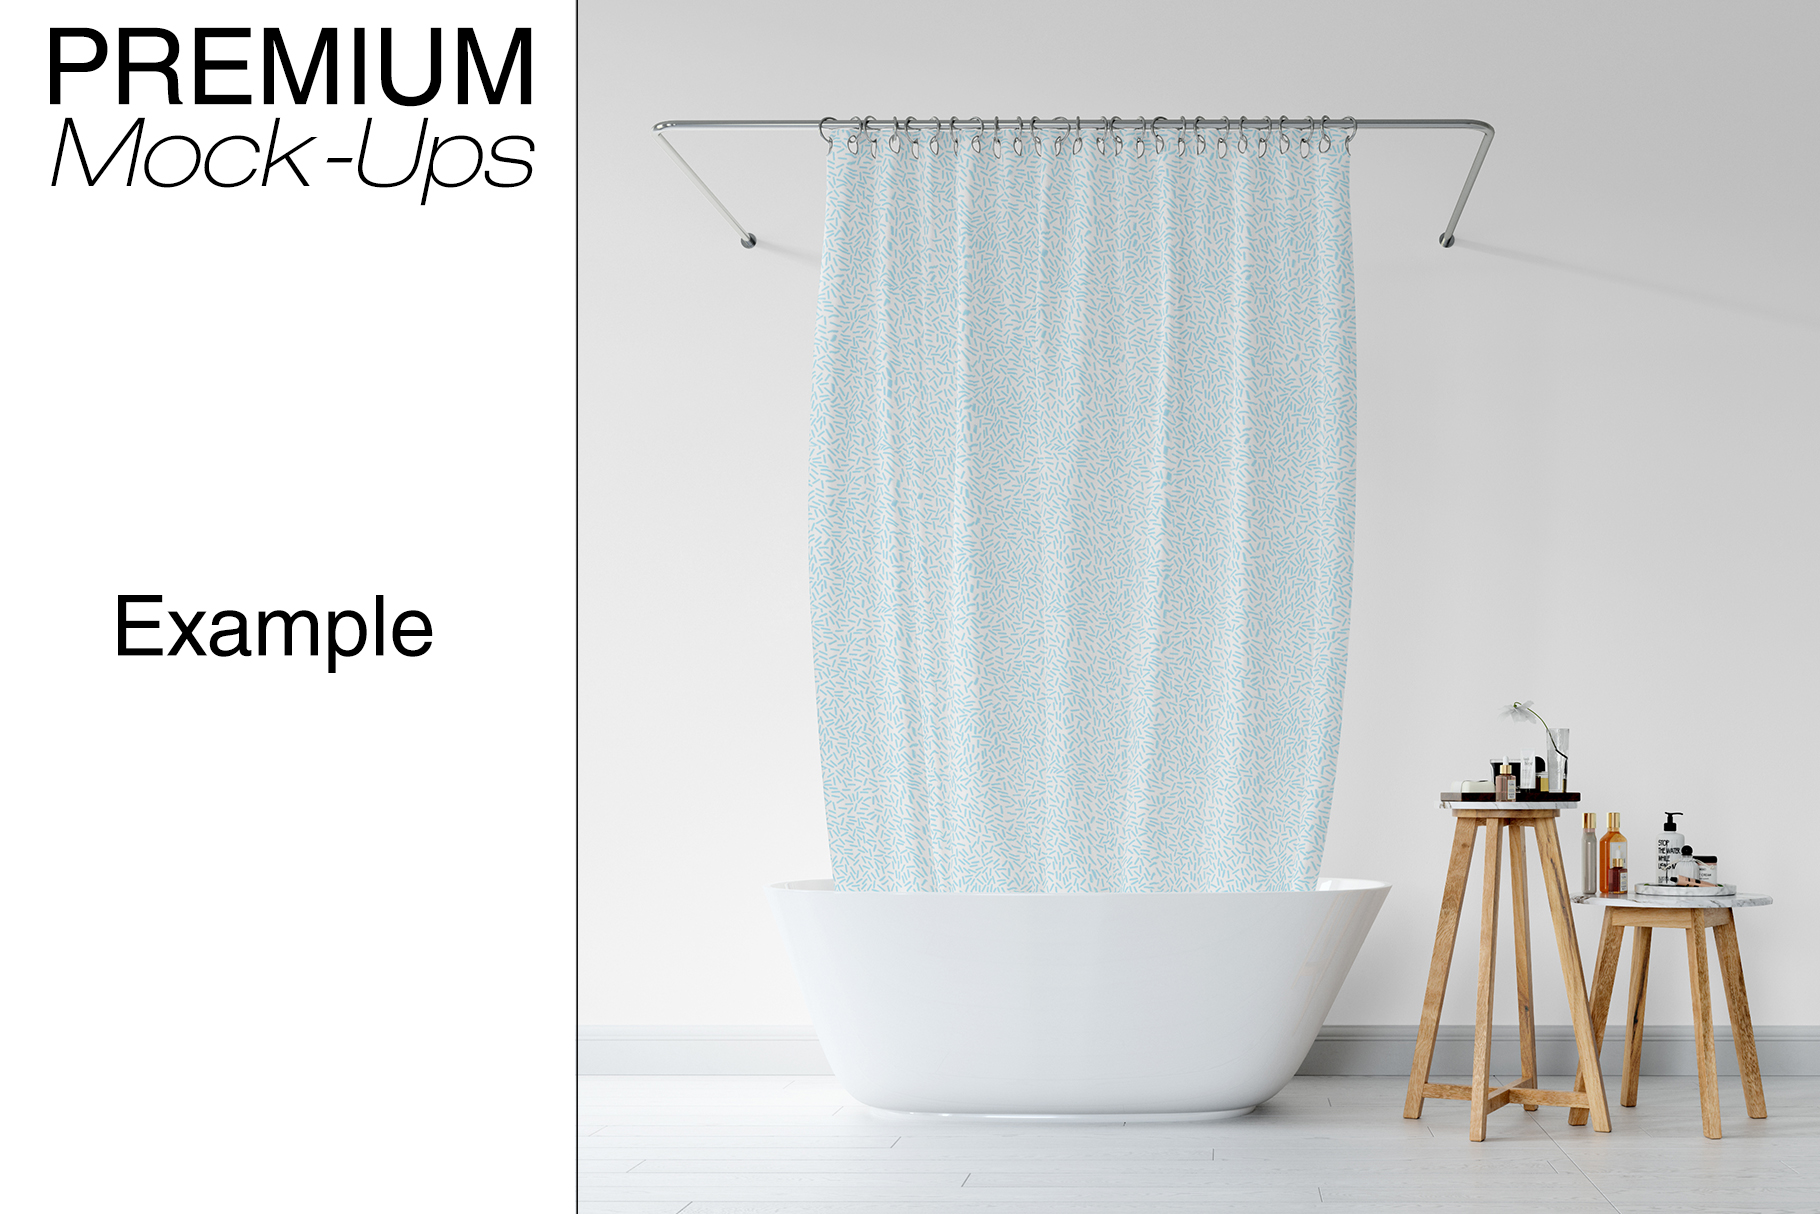 Bath Curtain Mockup Pack example image 8